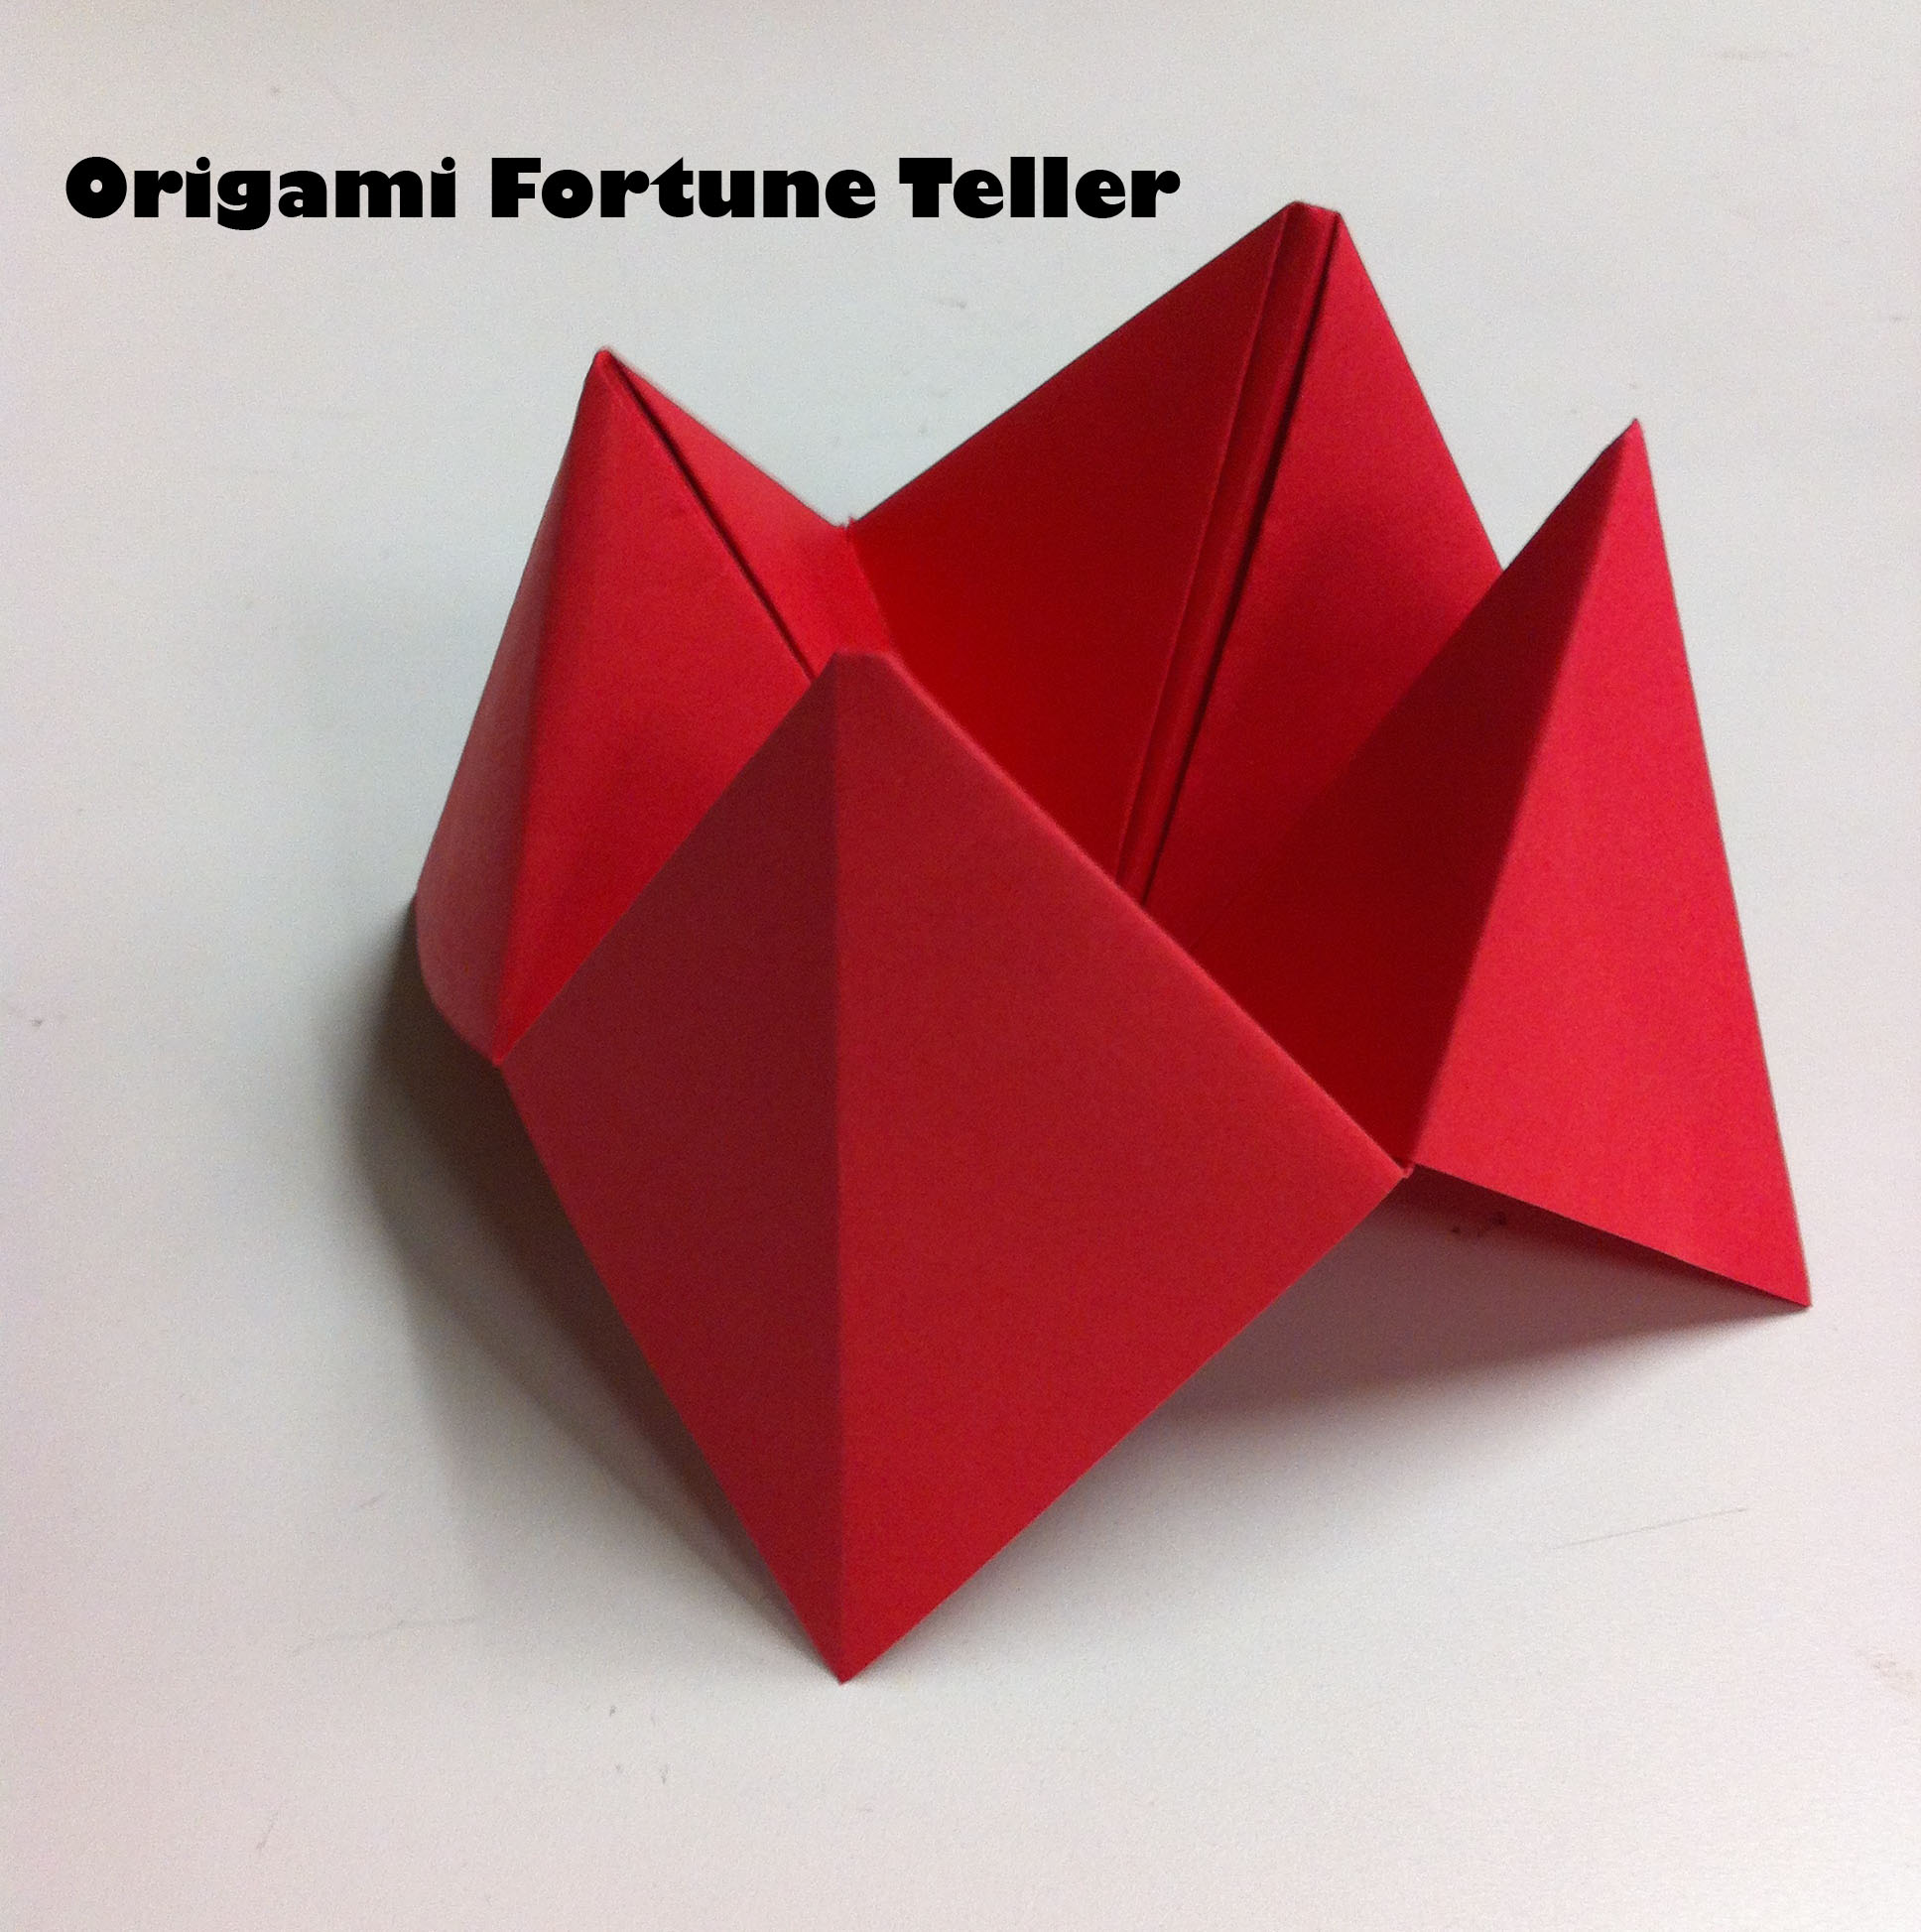 Easy Paper Craft Origami Fortune Tellers Like The One Below Are 1GJd01rx